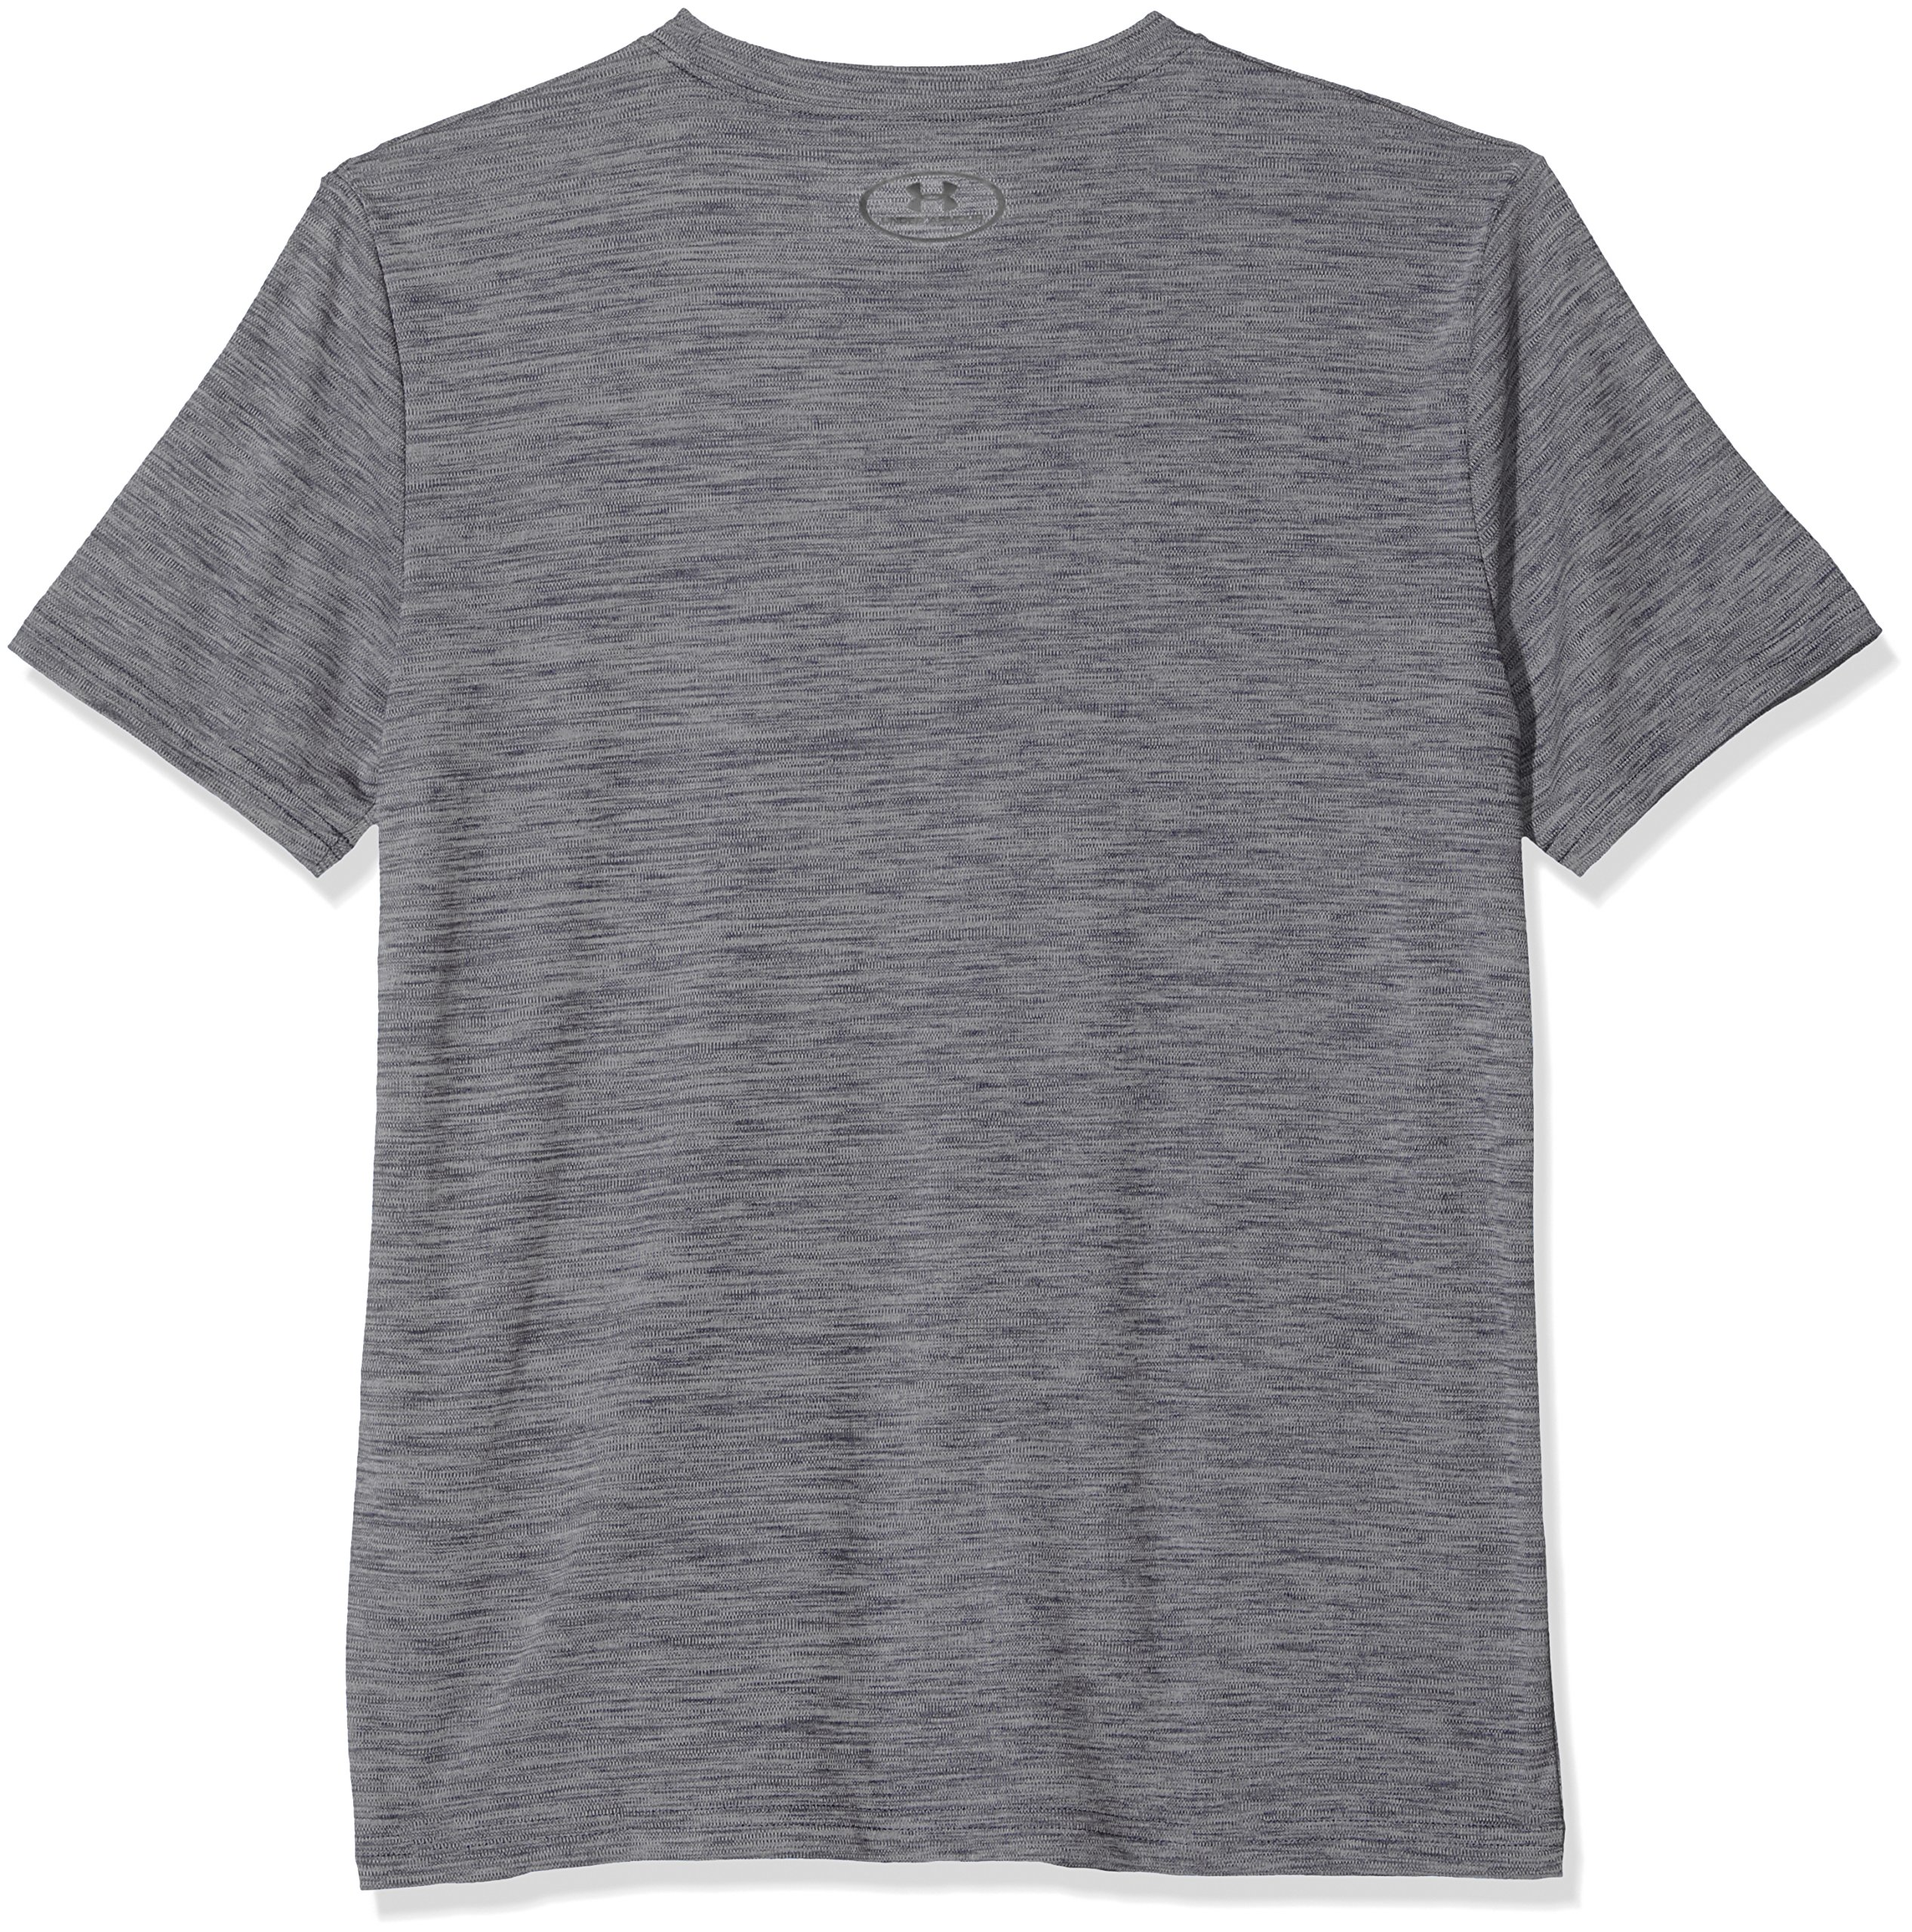 Under Armour Kids Boy's Crossfade Tee (Big Kids) Graphite/Royal/Red X-Small by Under Armour (Image #2)